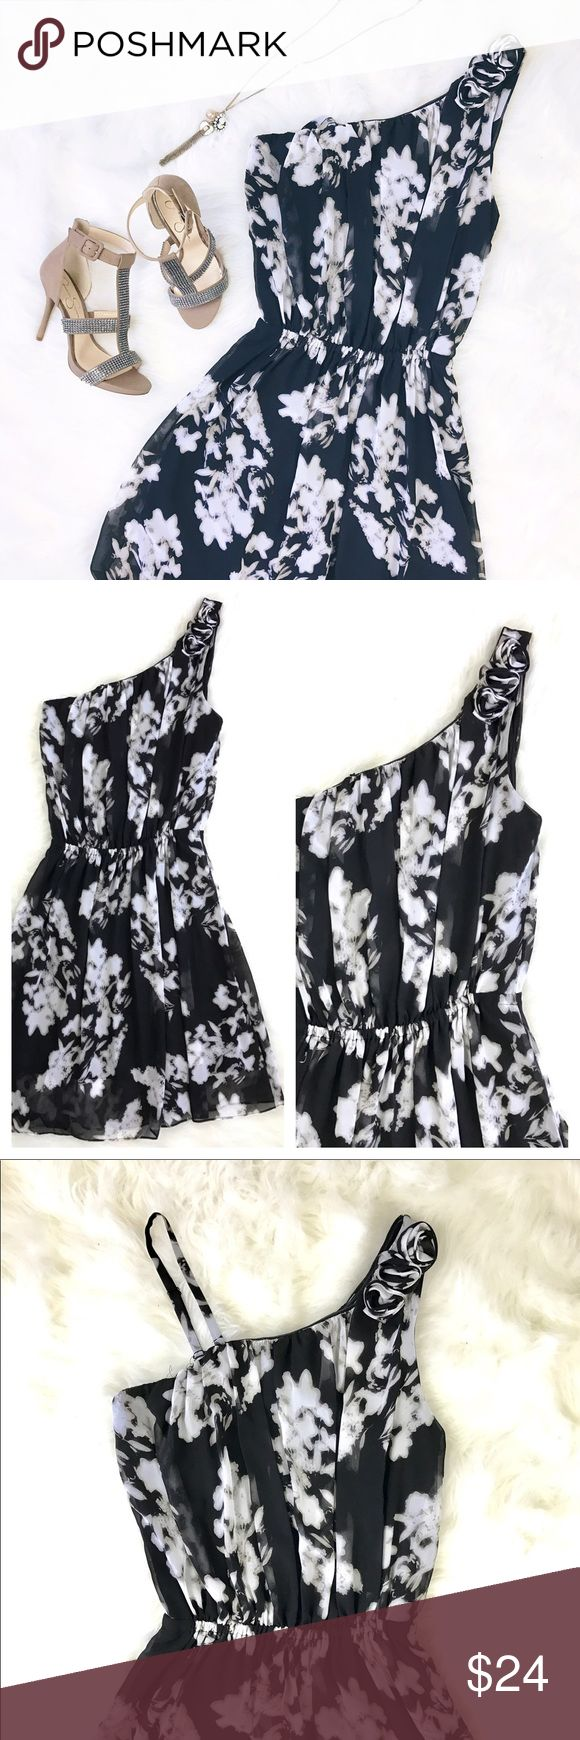 Alfani One Shoulder Floral Rosette Draped Dress Alfani Size 12 One Shoulder Black And White Floral Rosette Draped Dress  A breezy blouson fit lends relaxed elegance to this on-trend one shoulder petite floral dress from Alfani.  Polyester  Machine washable  One shoulder silhouette with rosette trim-comes with removable strap  Elastic band at waist creates blouson fit  Allover floral pattern  Pullover style with no closures  Lined  Hits slightly above knee There is a flaw near hem as…